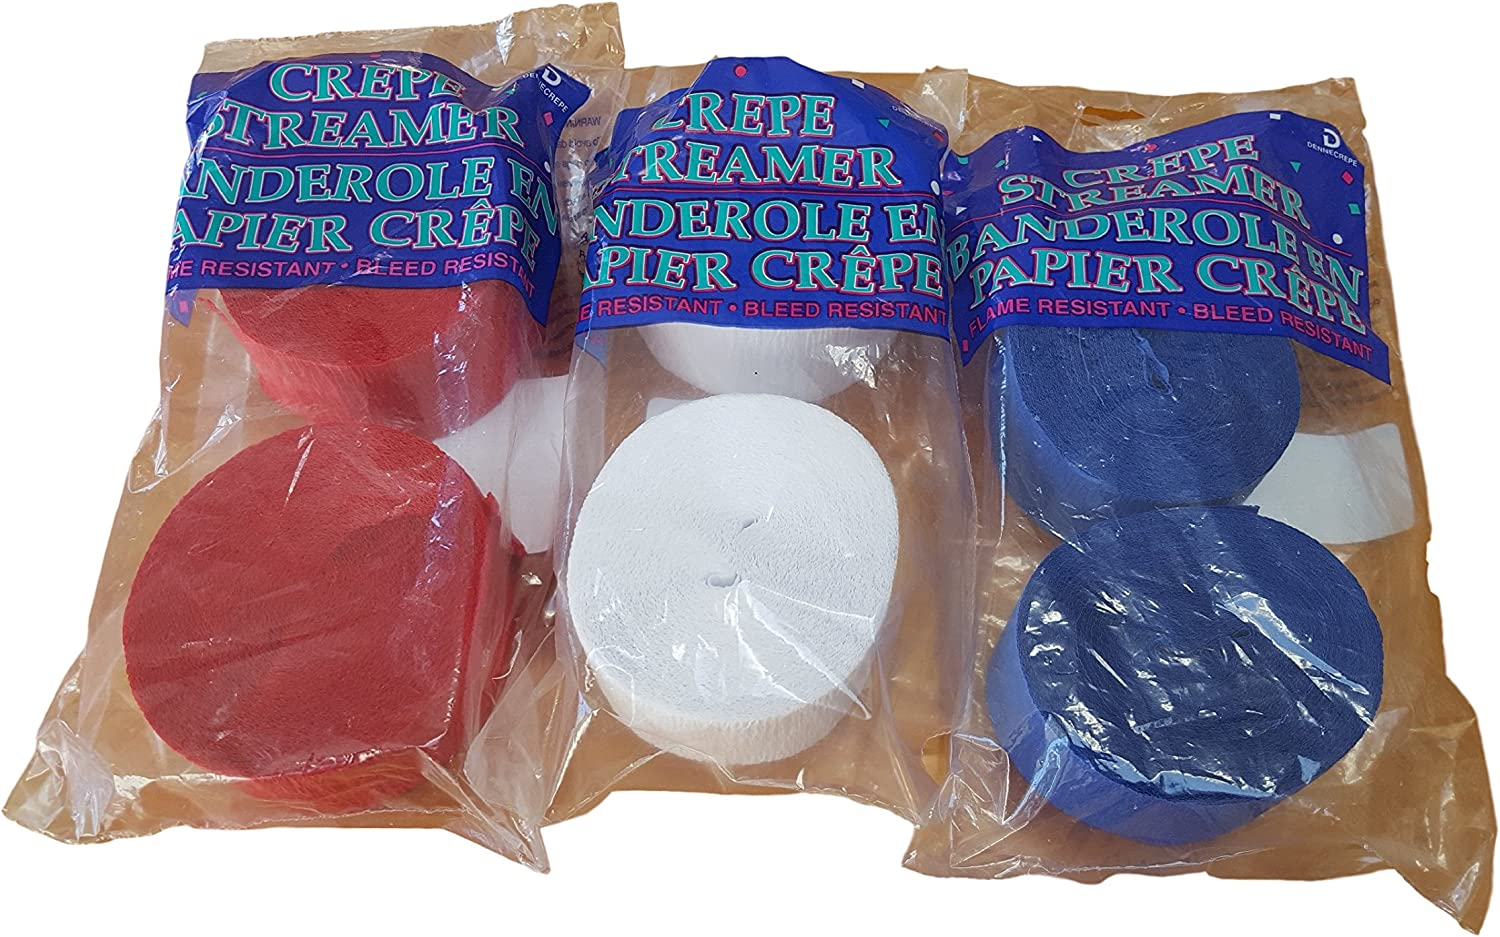 Patriotic Red White And Blue Crepe Paper Streamers 6 Rolls 435 Feet Total Made in USA